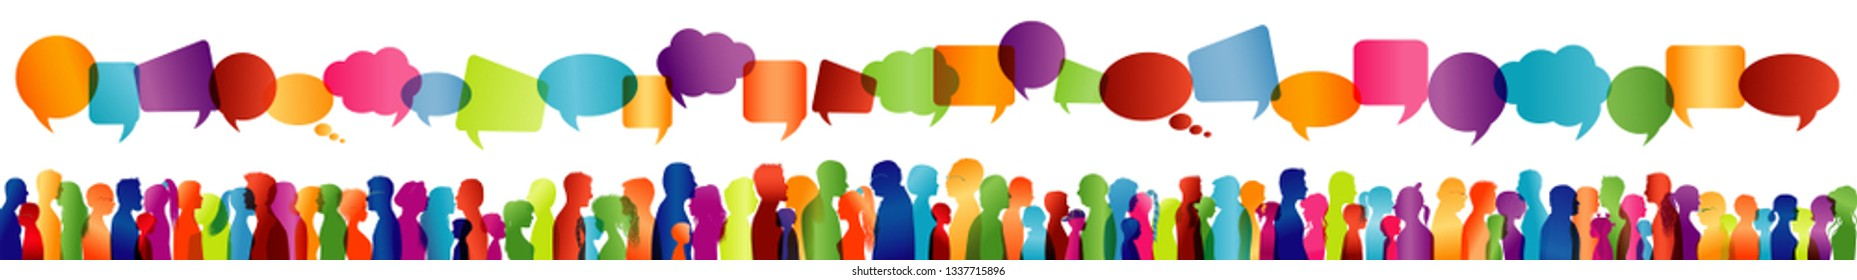 Speech bubble. Isolated large group communication of people talking. Crowd of people. Communicate social networking. Dialogue between people. Colored profile silhouette. Multiple exposure